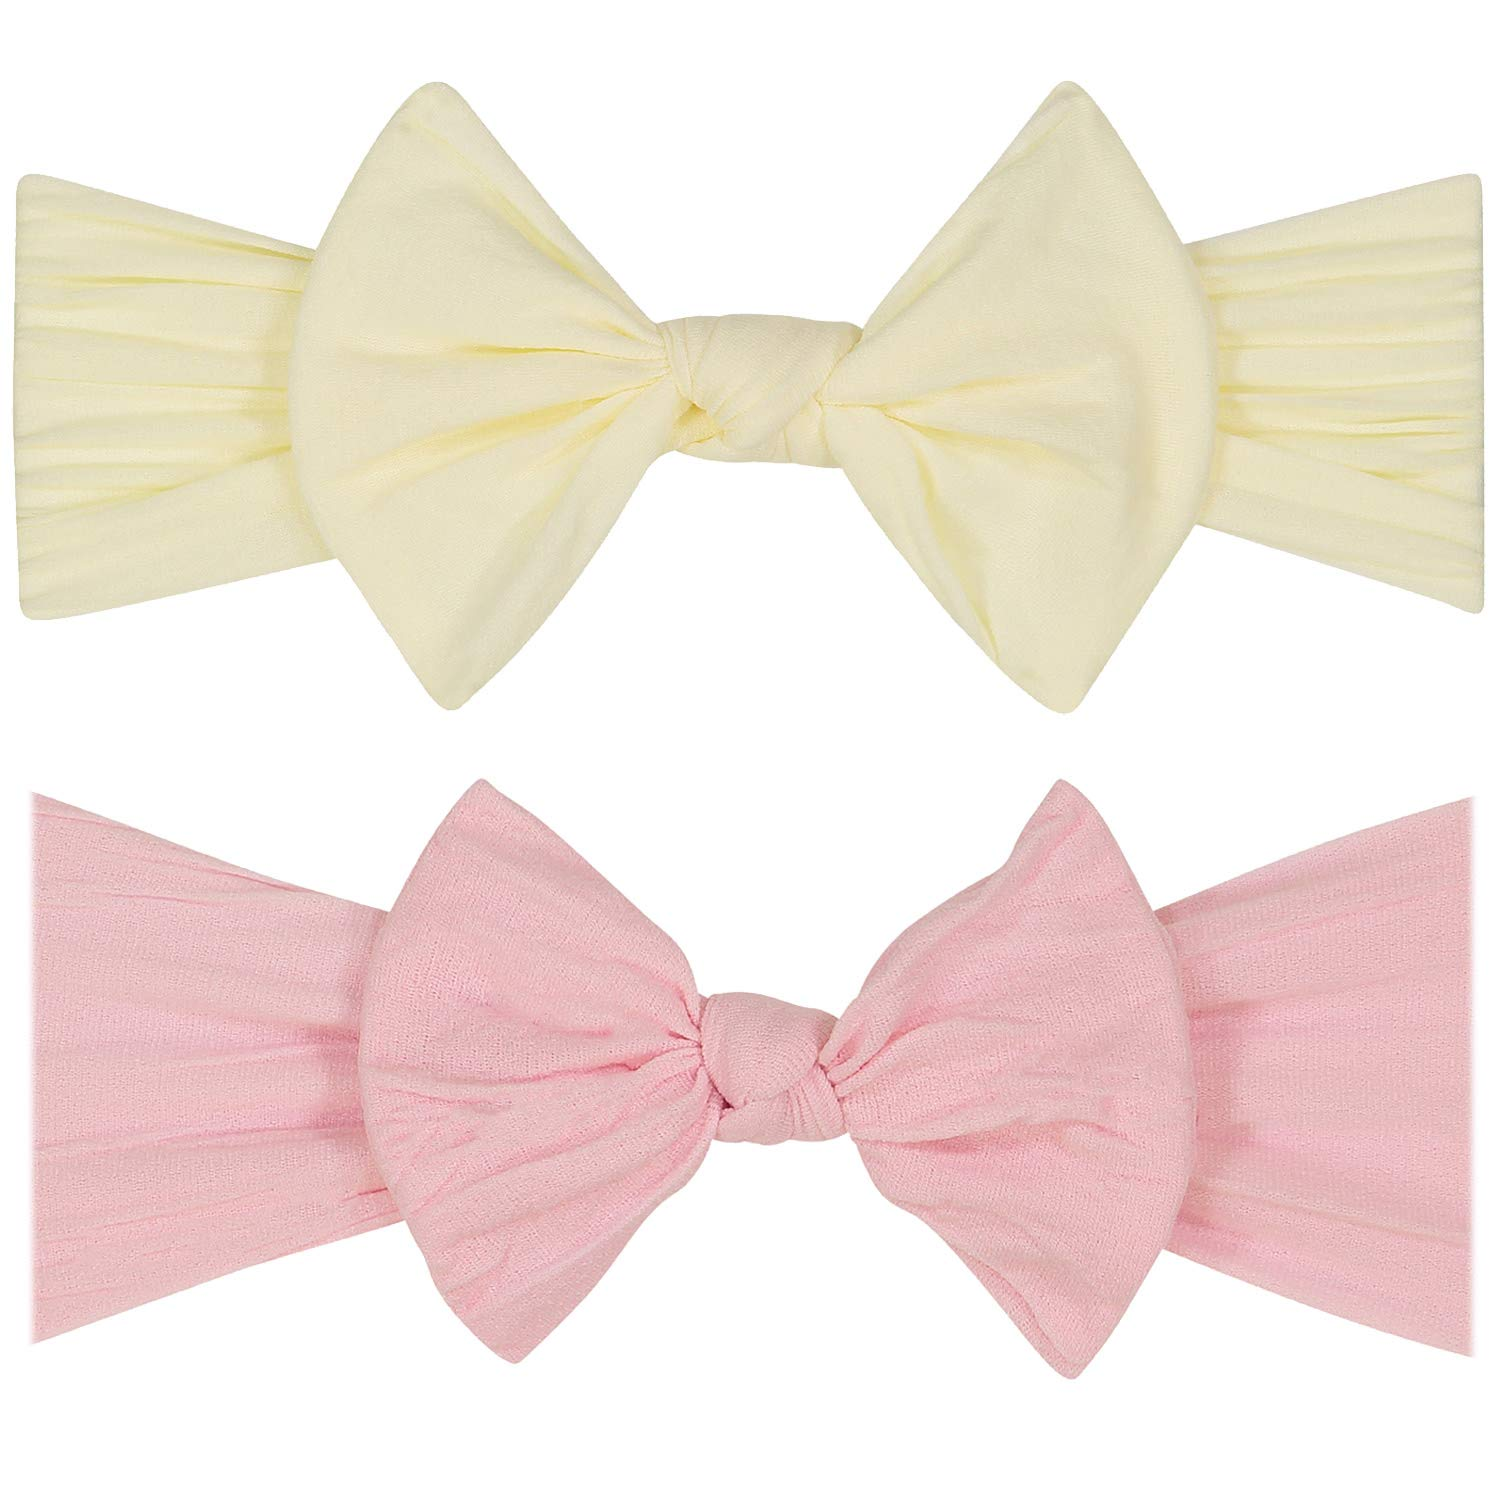 YOUR NEW FAVORITE BABY HEADBANDS - 2 PACK - Super Stretchy Knot Newborn & Baby Headbands